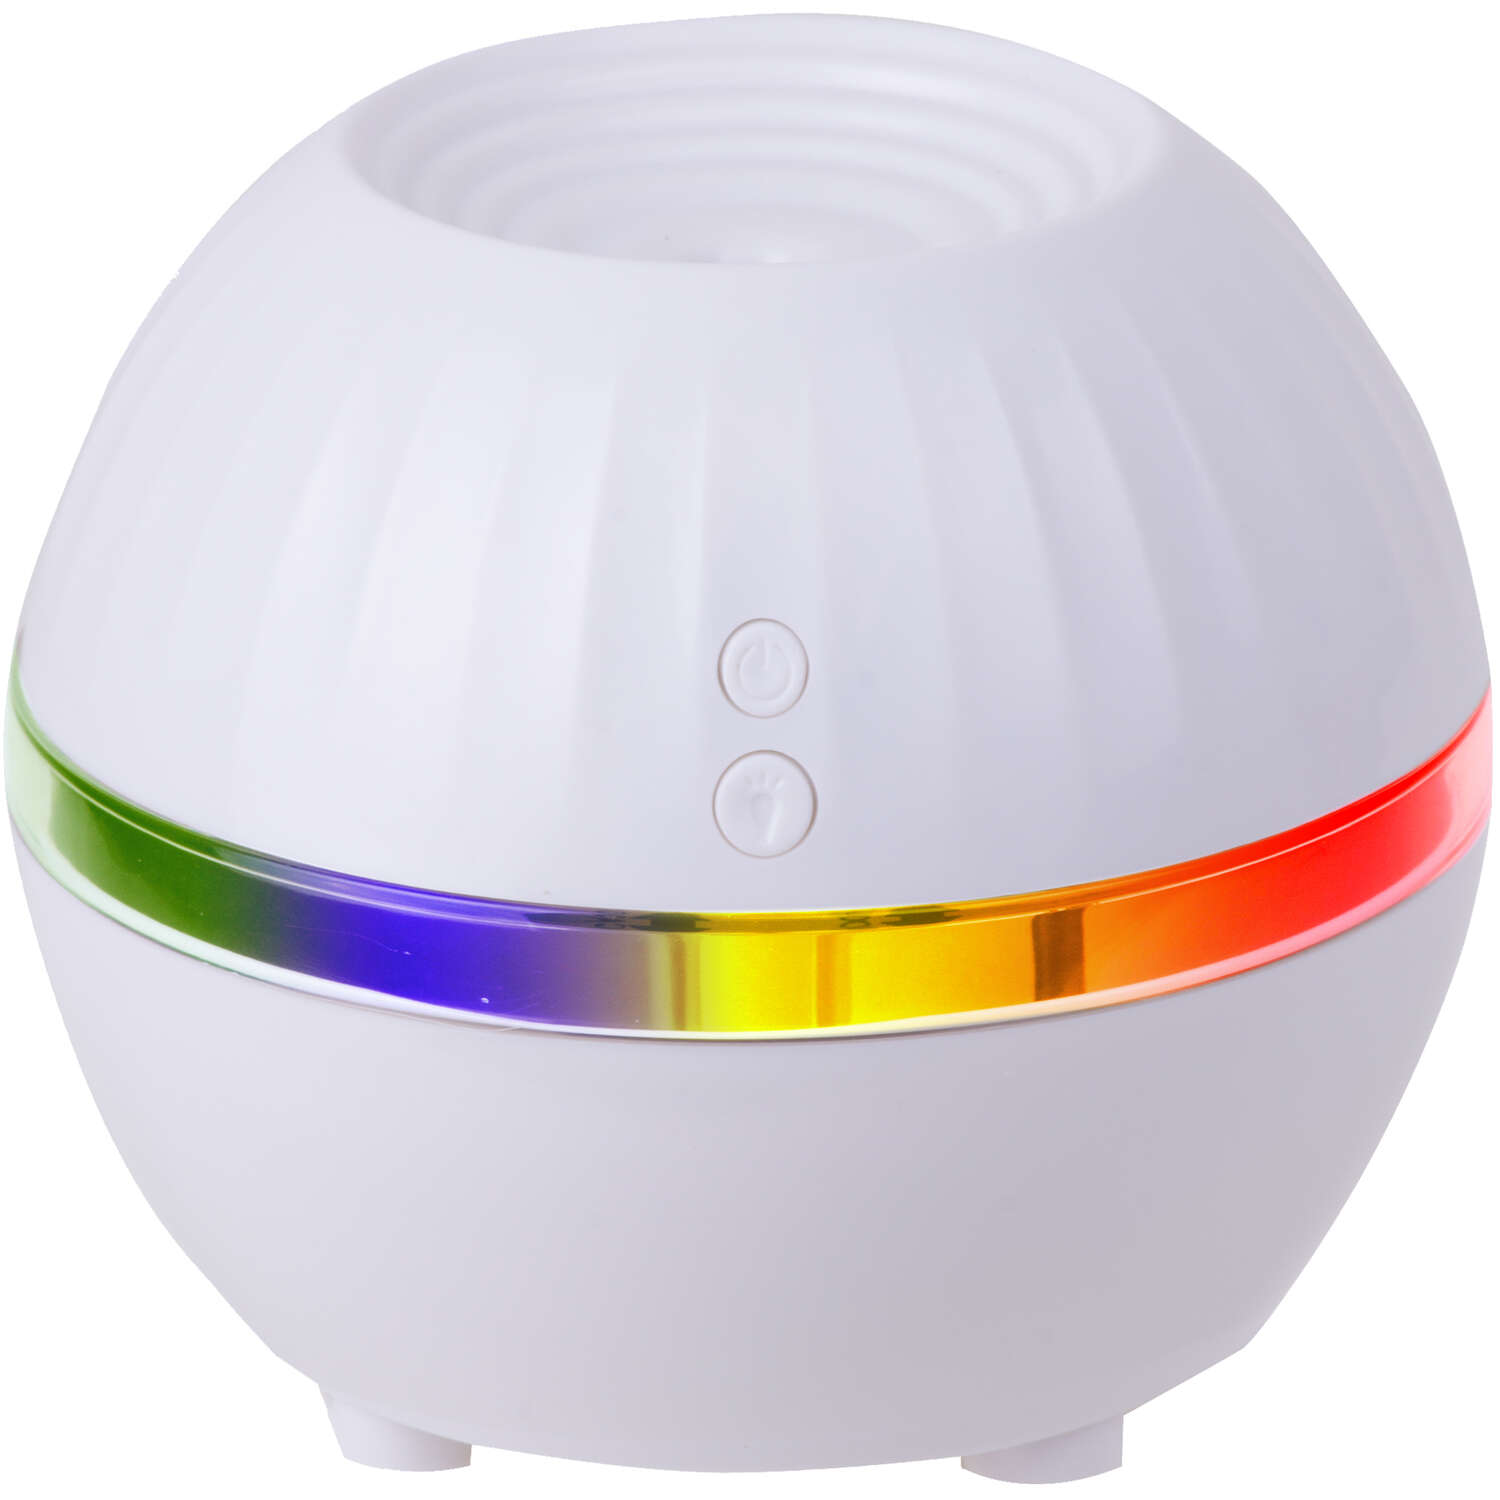 Air Innovations  Great Innovations  0.3 gal. 150 sq. ft. Manual  LED Mood Light Personal Humidifier